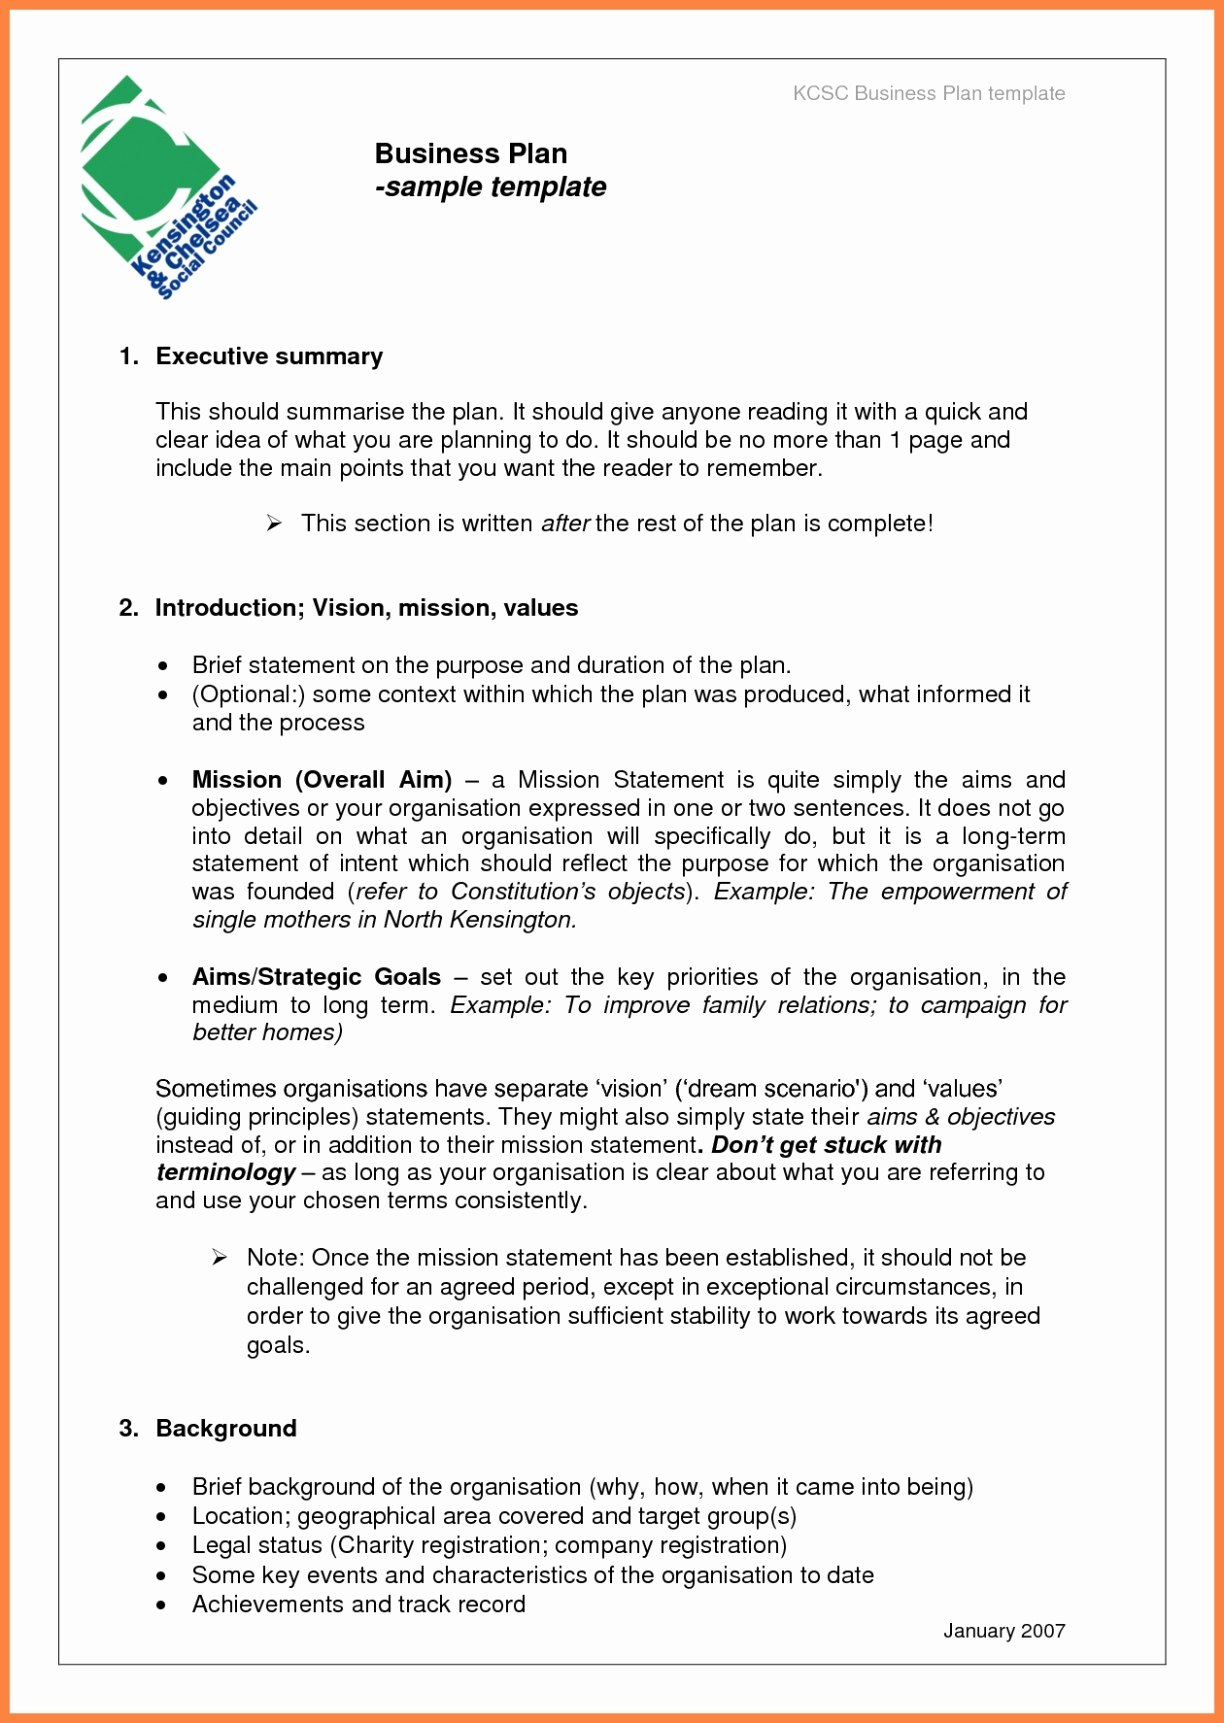 Free Sample Of Business Plan For Trucking Company Template Intended For Business Plan Template For Trucking Company